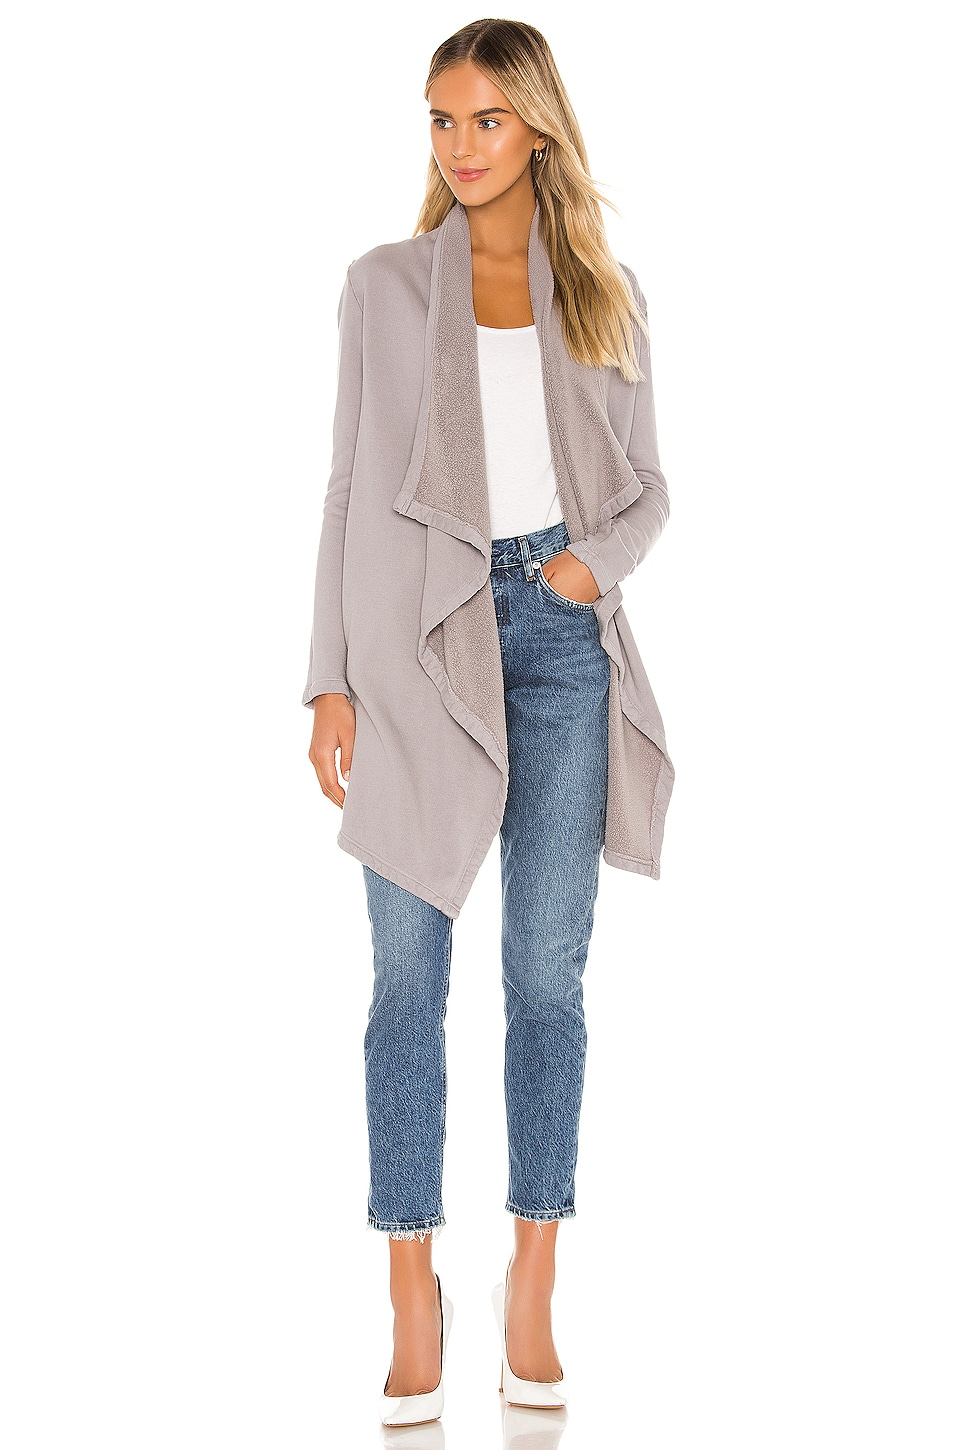 LA Made Aria Essential Cardigan in On The Rocks